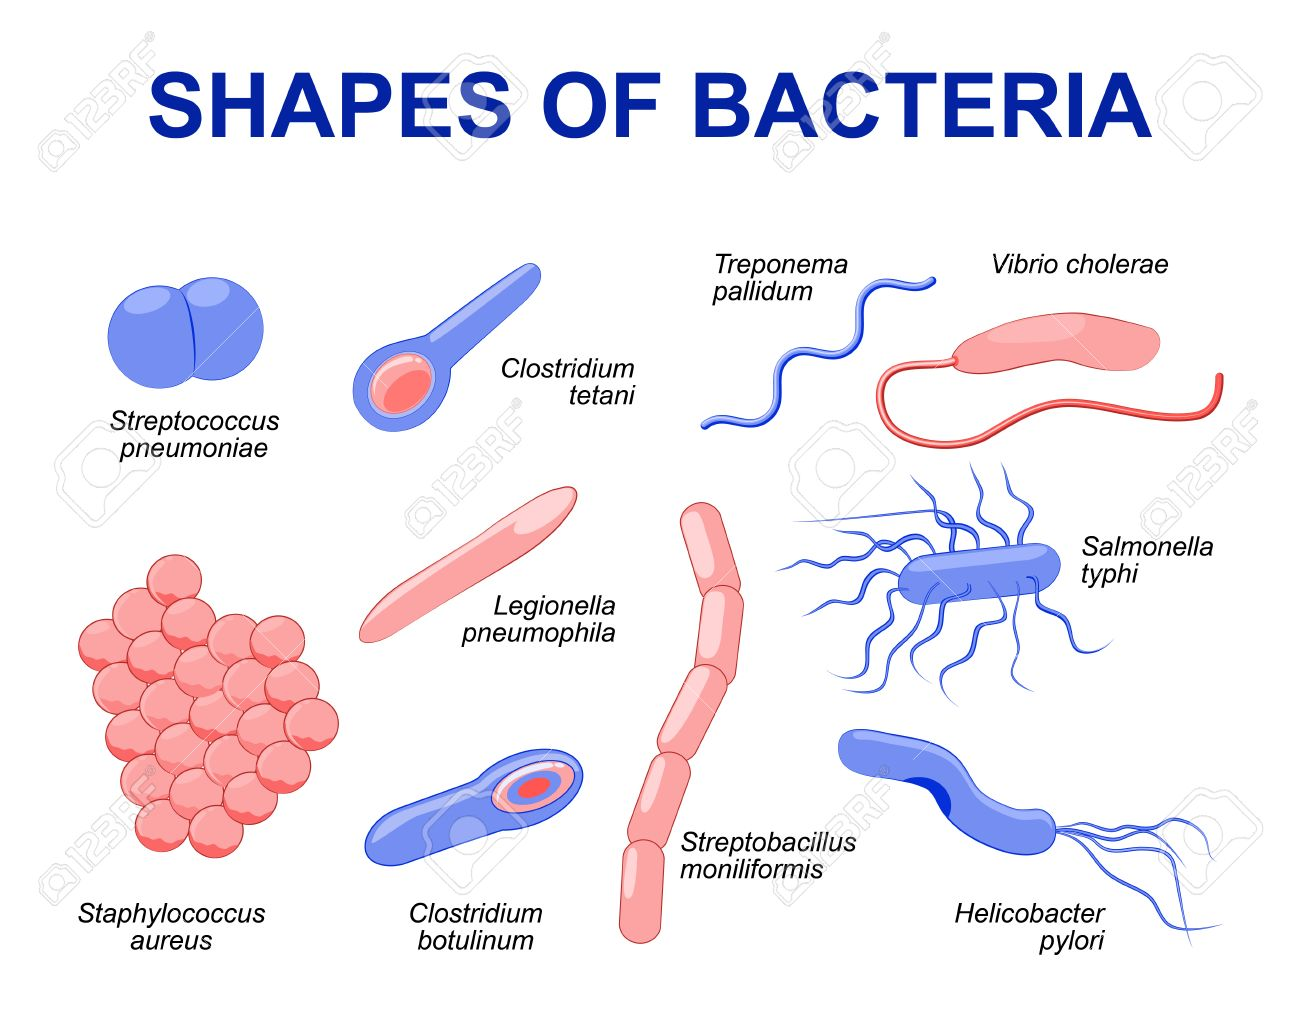 Common bacteria infecting human. illustration Bacteria are classified into 5 groups according to their basic shapes: spherical (cocci), rod (bacilli), spiral (spirilla), comma (vibrios) or corkscrew (spirochaetes). - 57464261